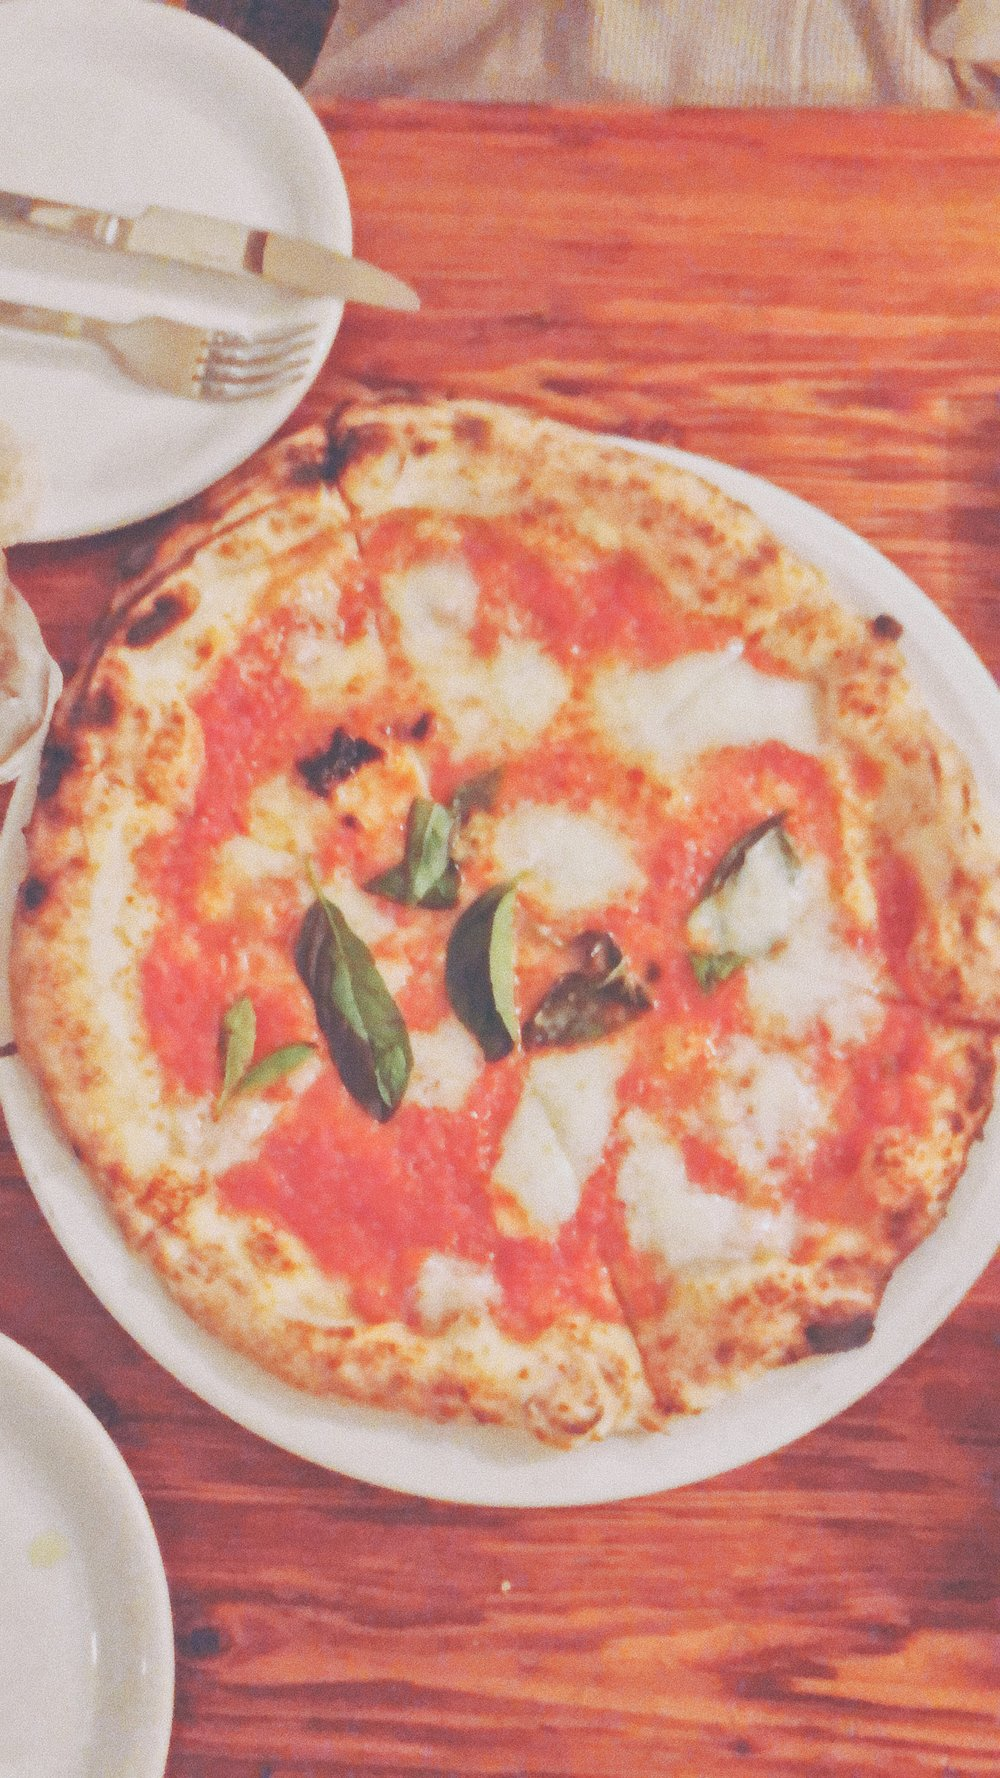 Quick Cell Phone snap of the my Yummy Margarita Pizza